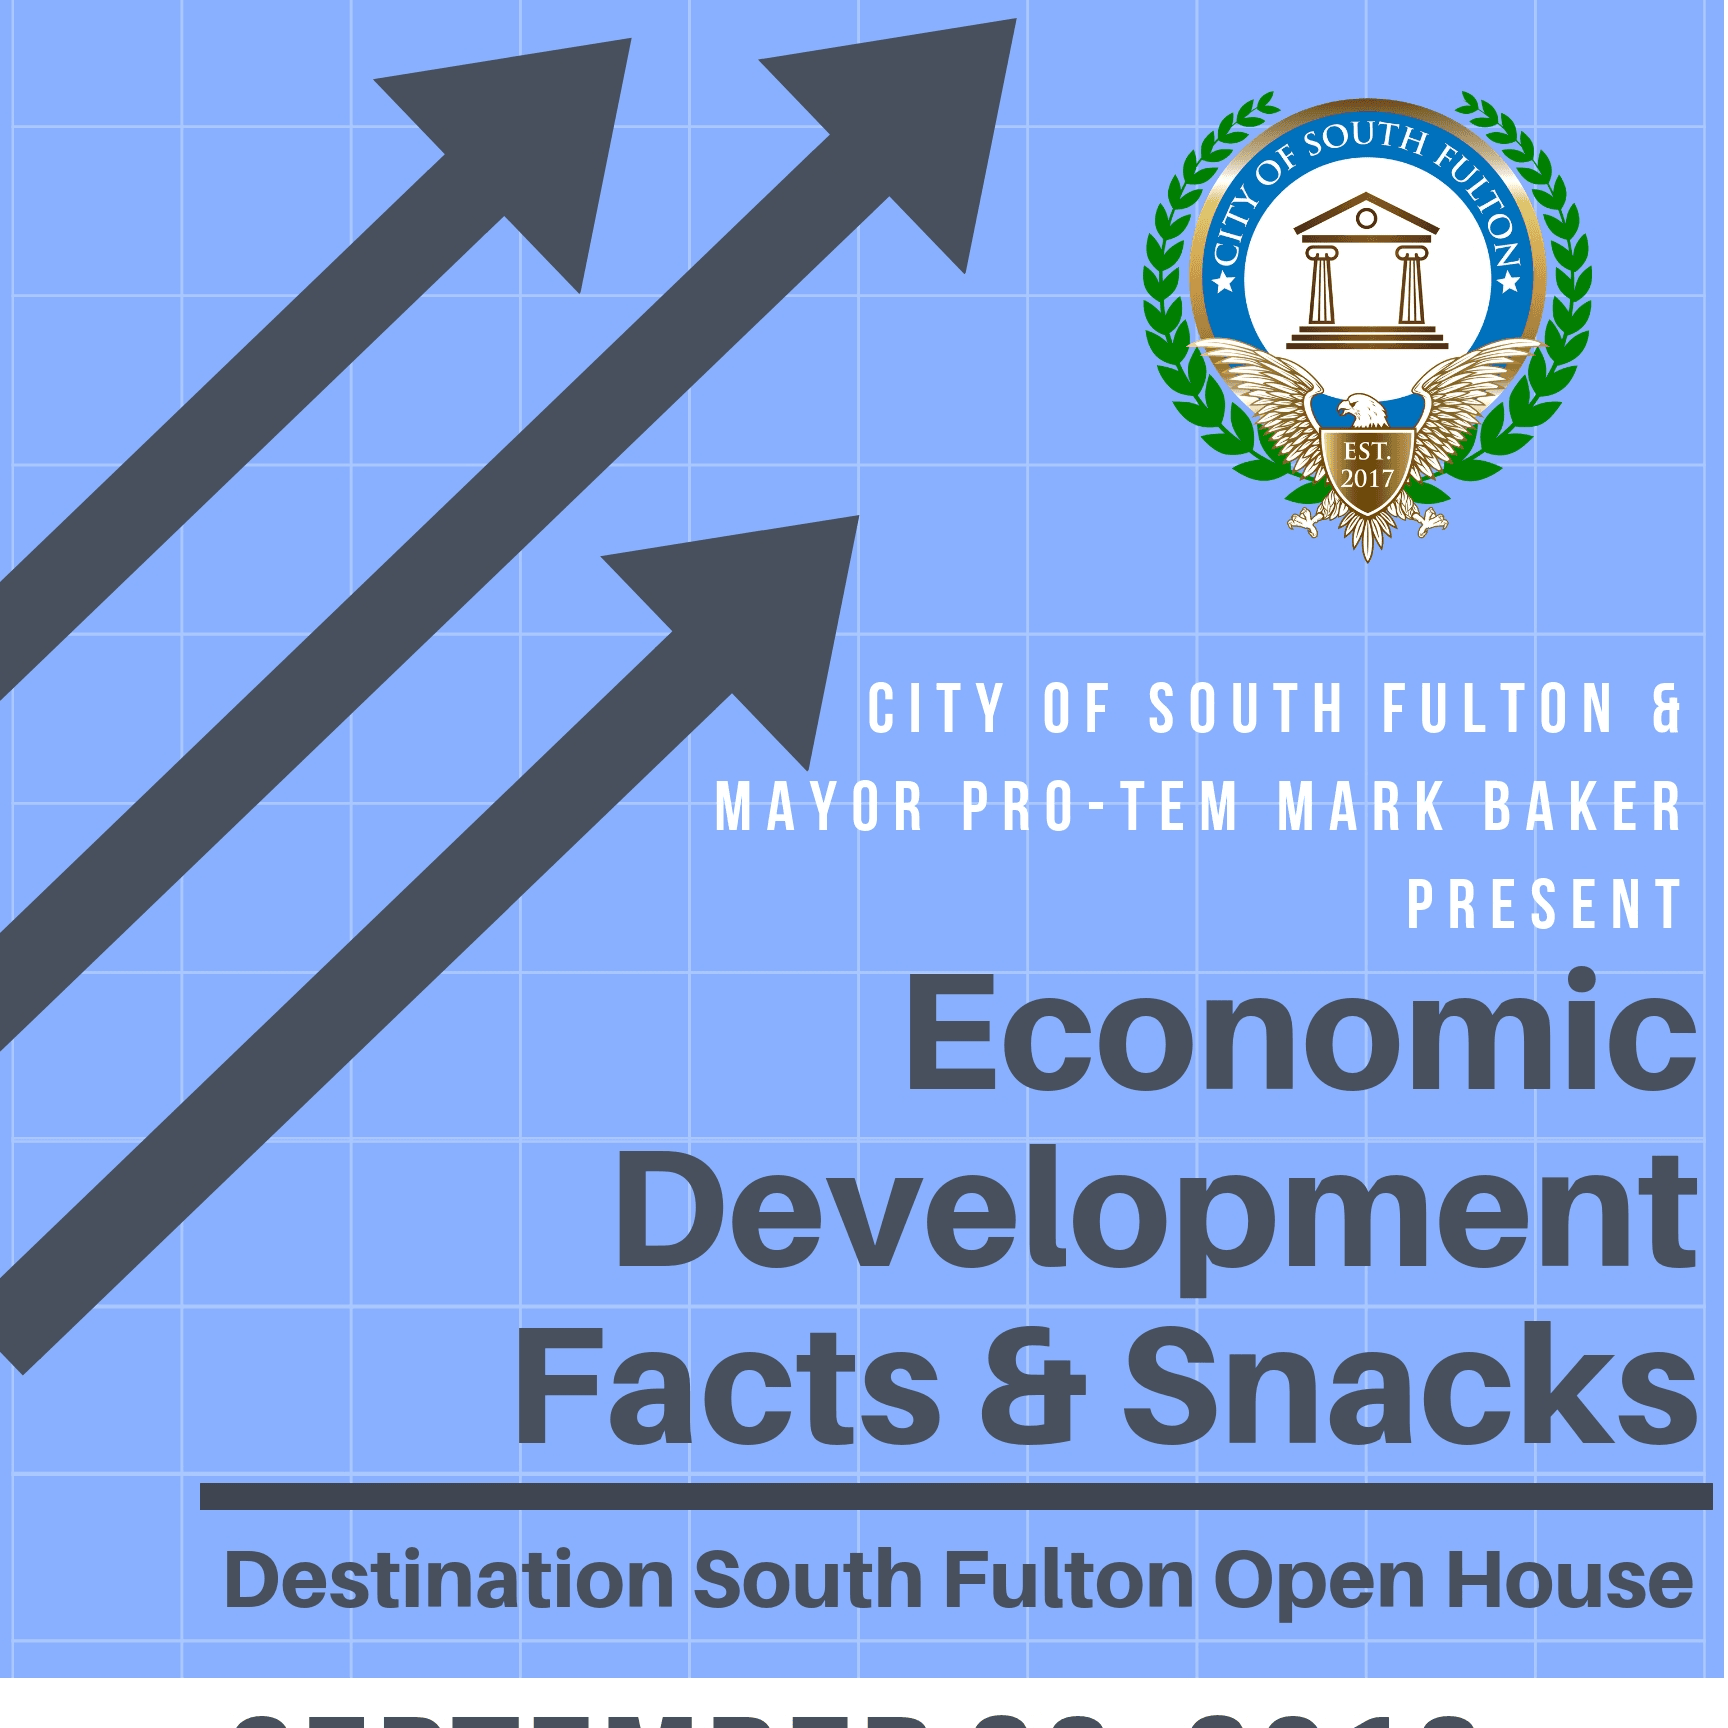 Facts and snacks